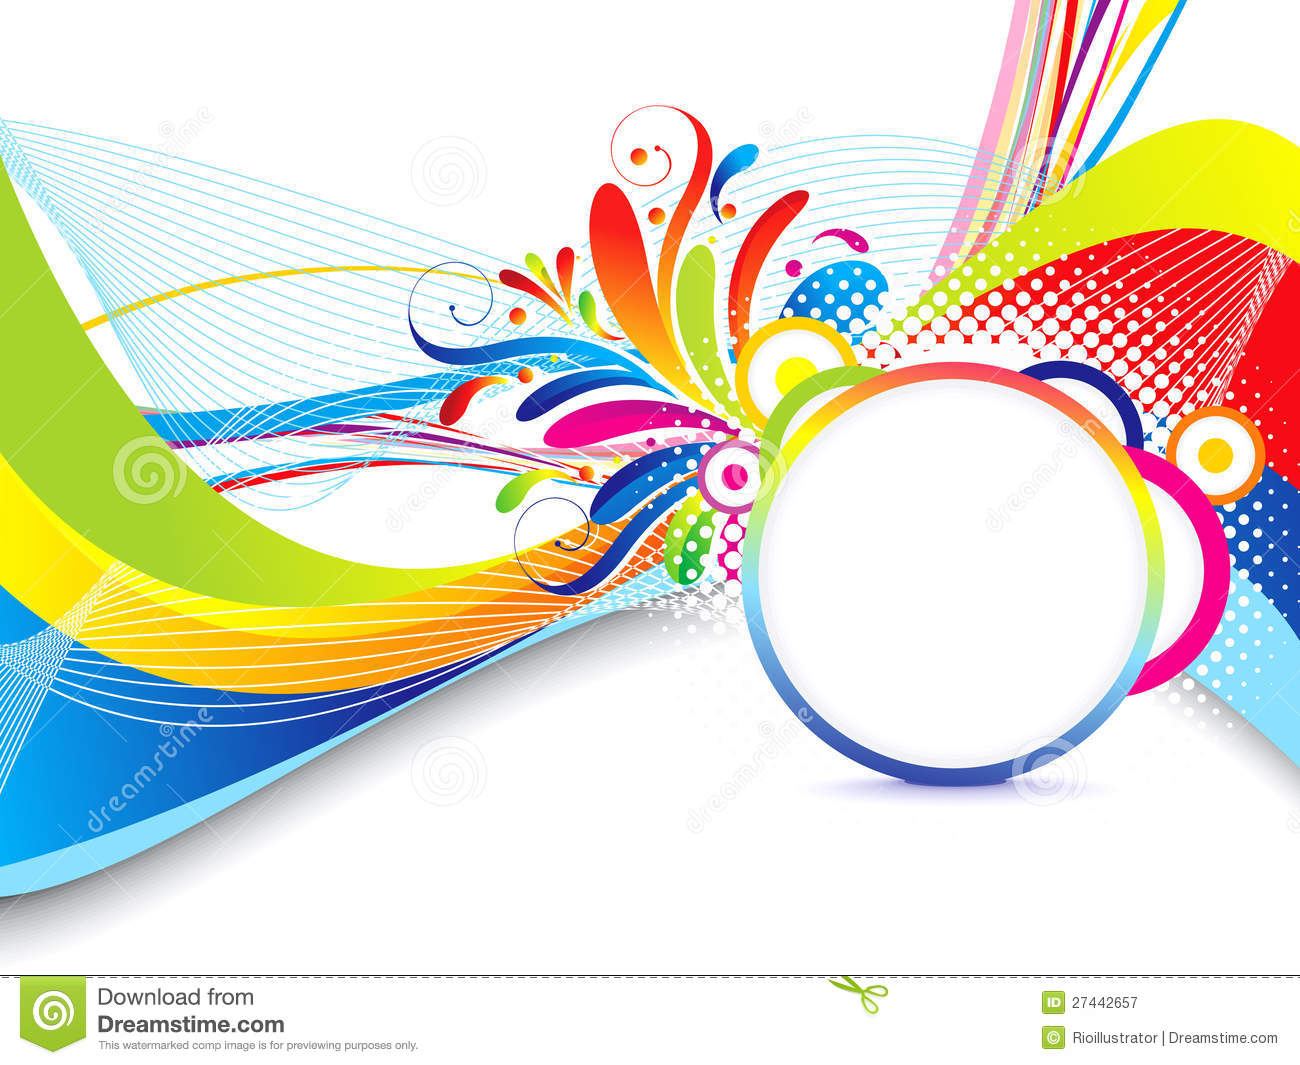 Abstract Volleyball On Colorful Wave Background: Abstract Colorful Wave Background With Floral Royalty Free